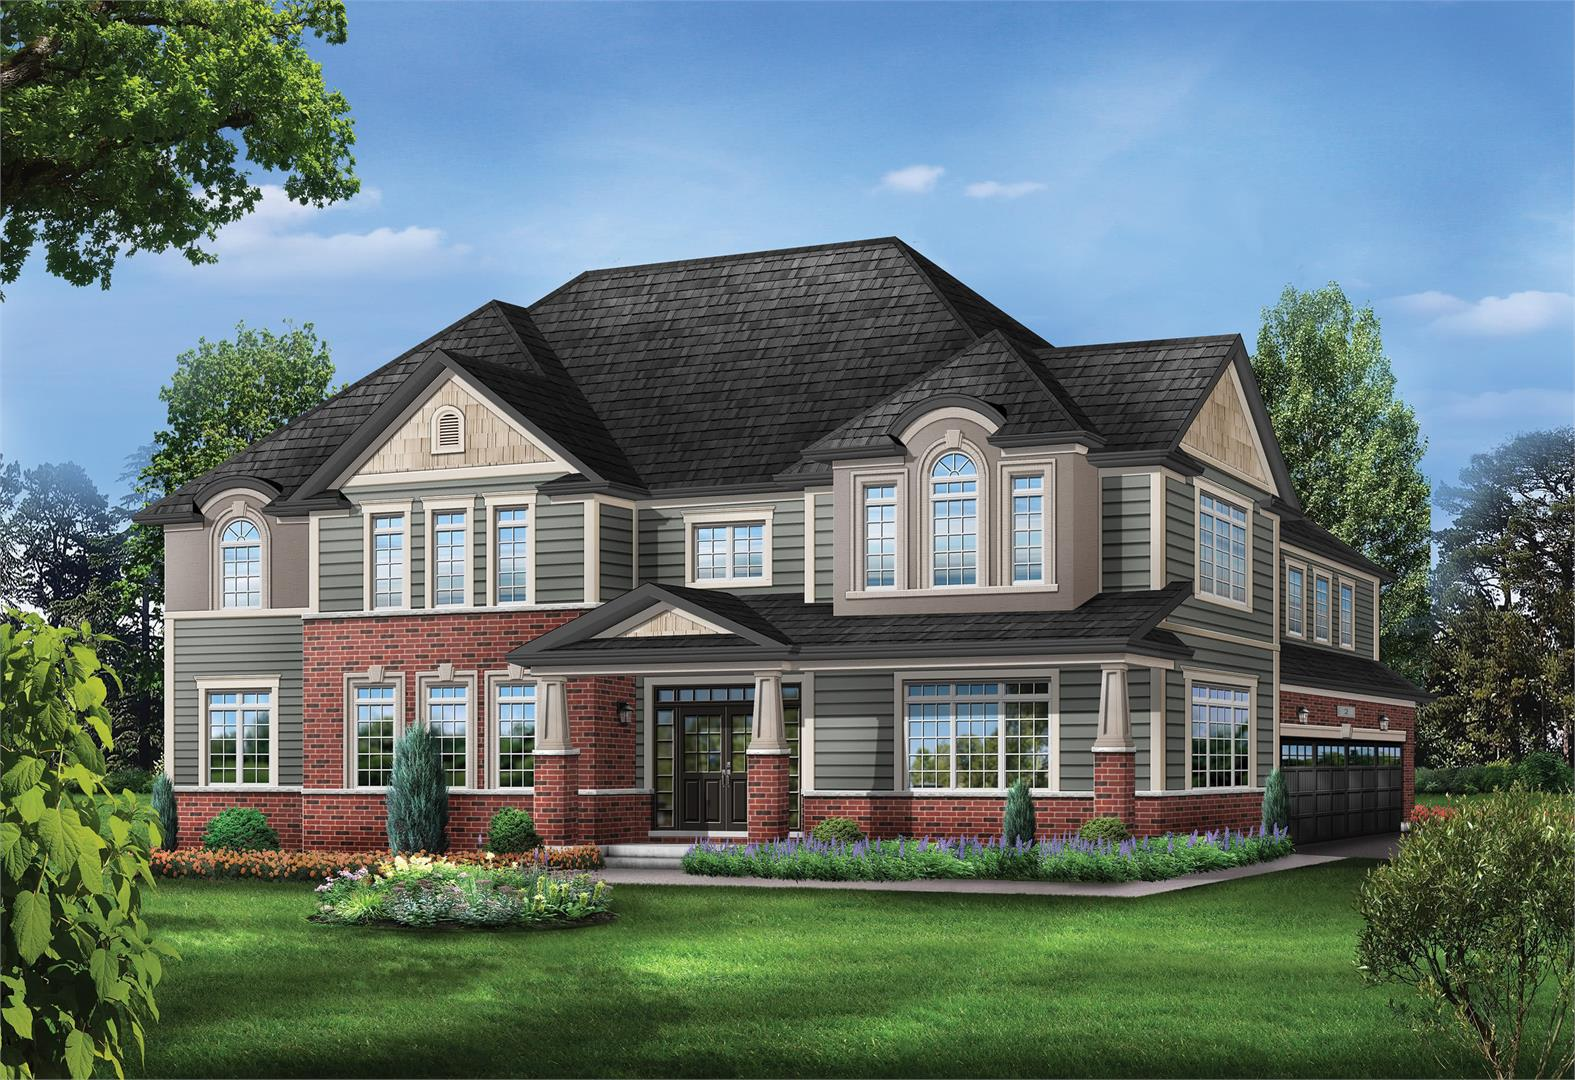 Brantview Heights Towns & Homes Exterior Rendering, Brantford